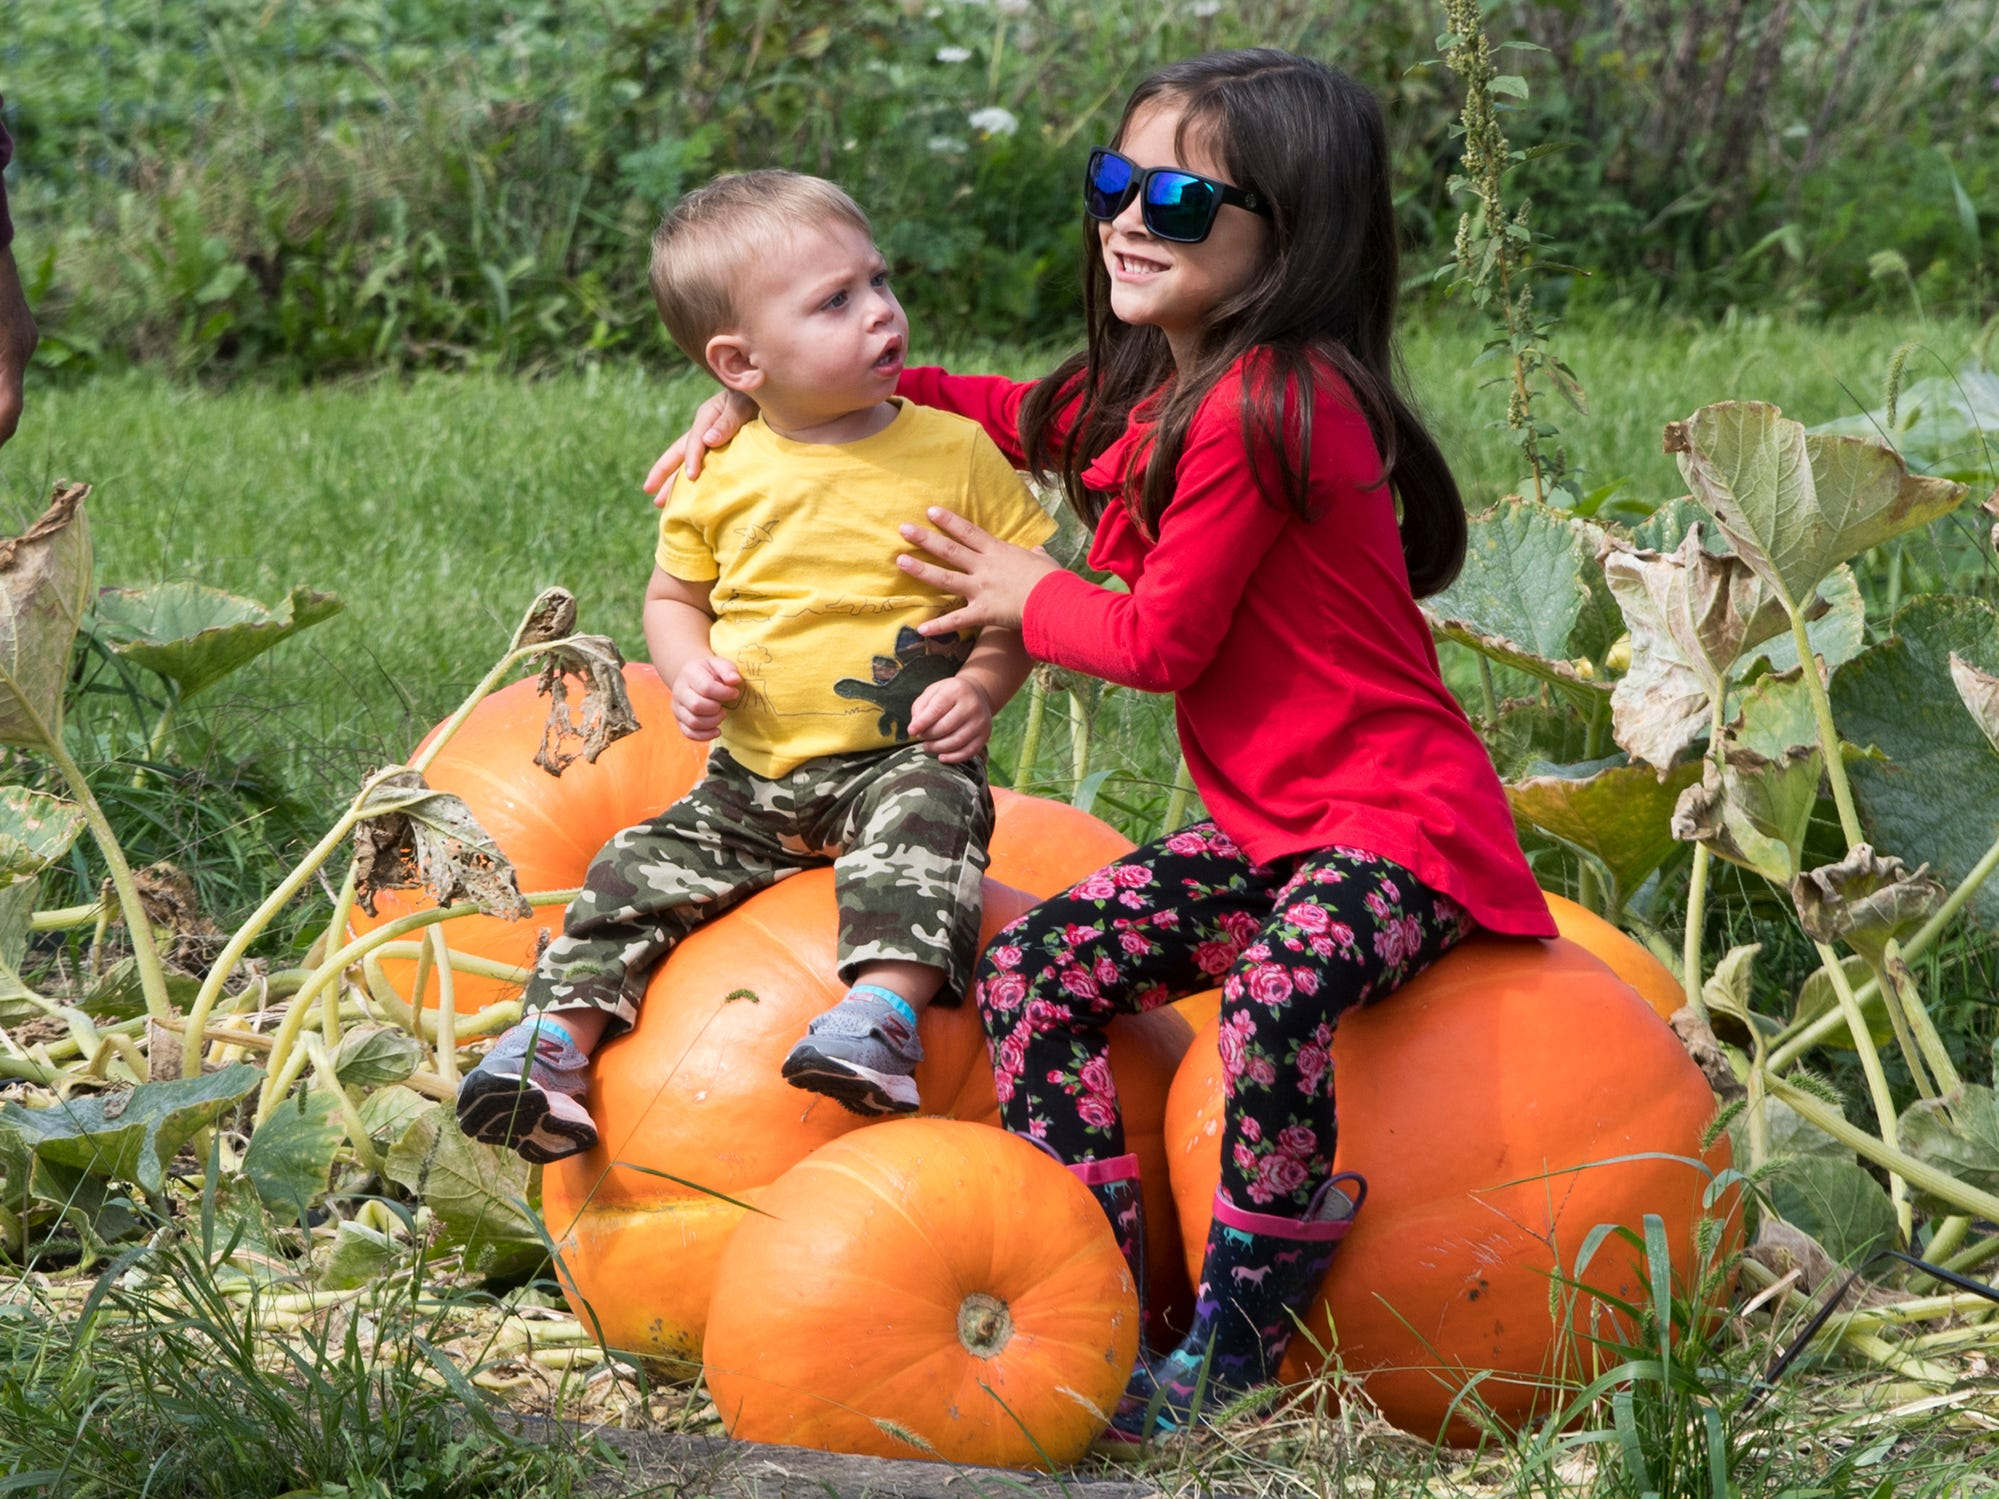 Axel, left, 1 and Mya Ross, 6, both of Dillsburg, set up for a photo moment at Paulus Orchards in Monaghan Township on Sunday. The farm offers a variety of fall activities plus a market store.